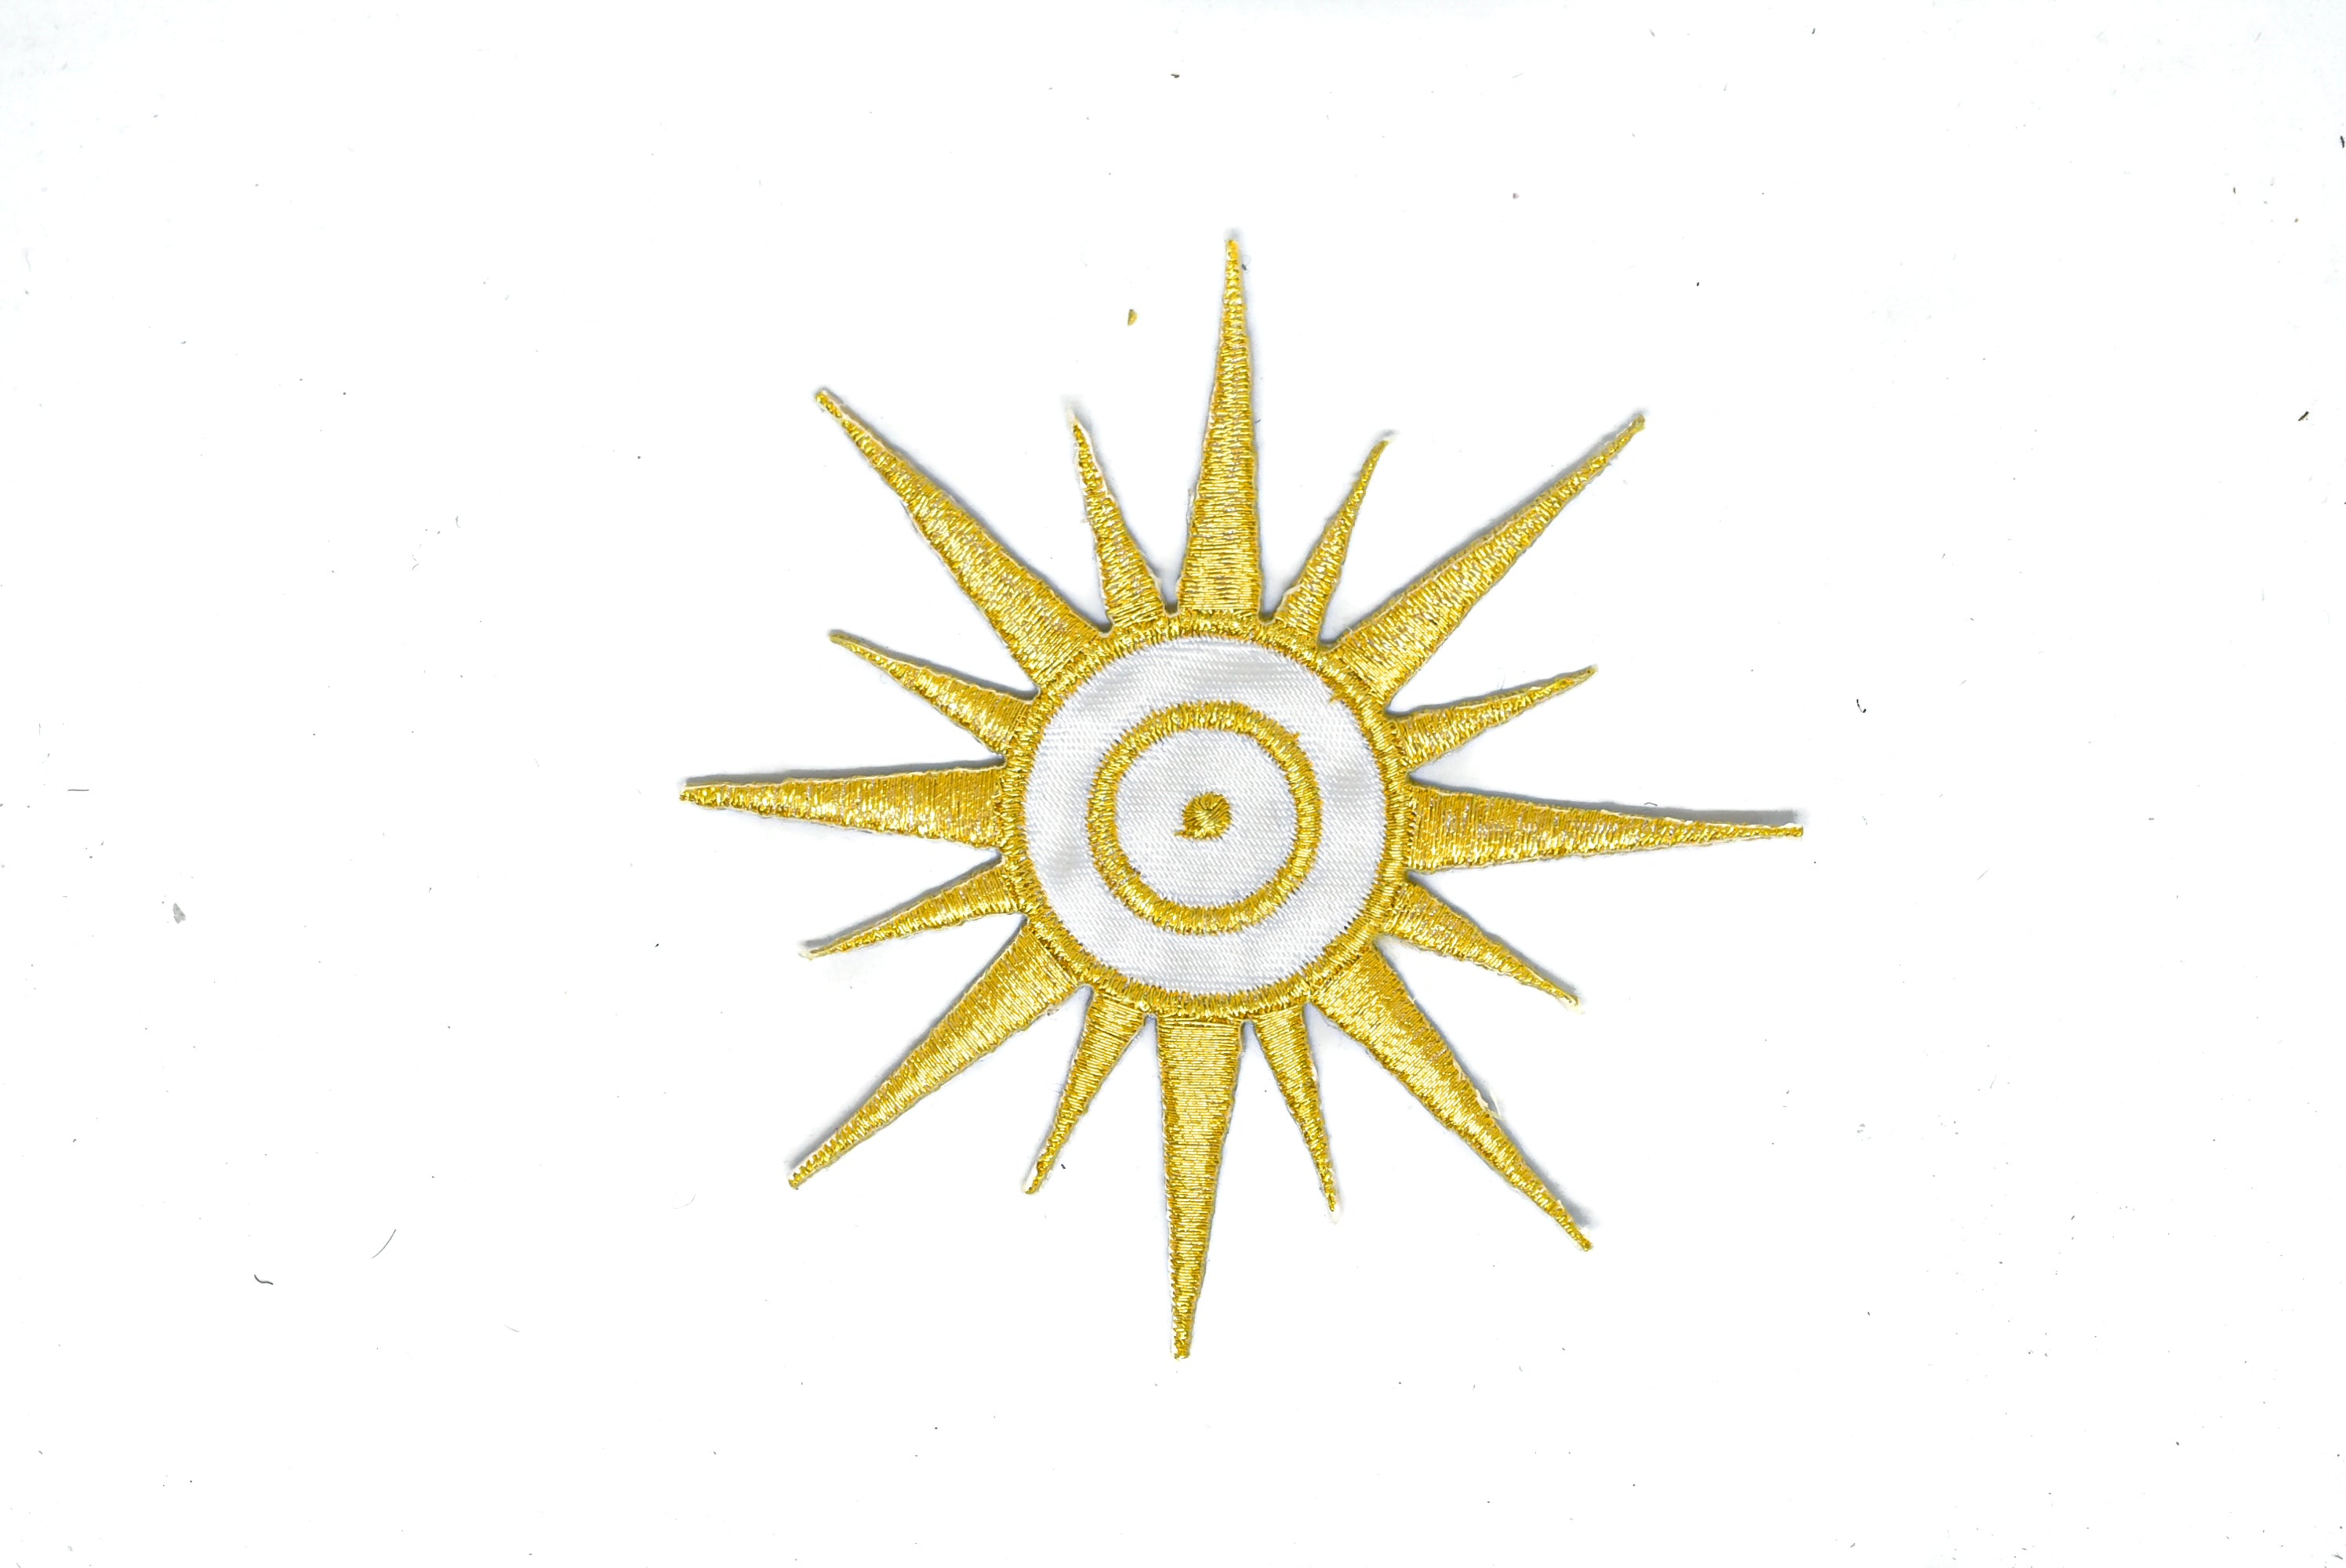 "Embroidered Sun Iron On Patch Applique 3.5"" - 1 Piece"